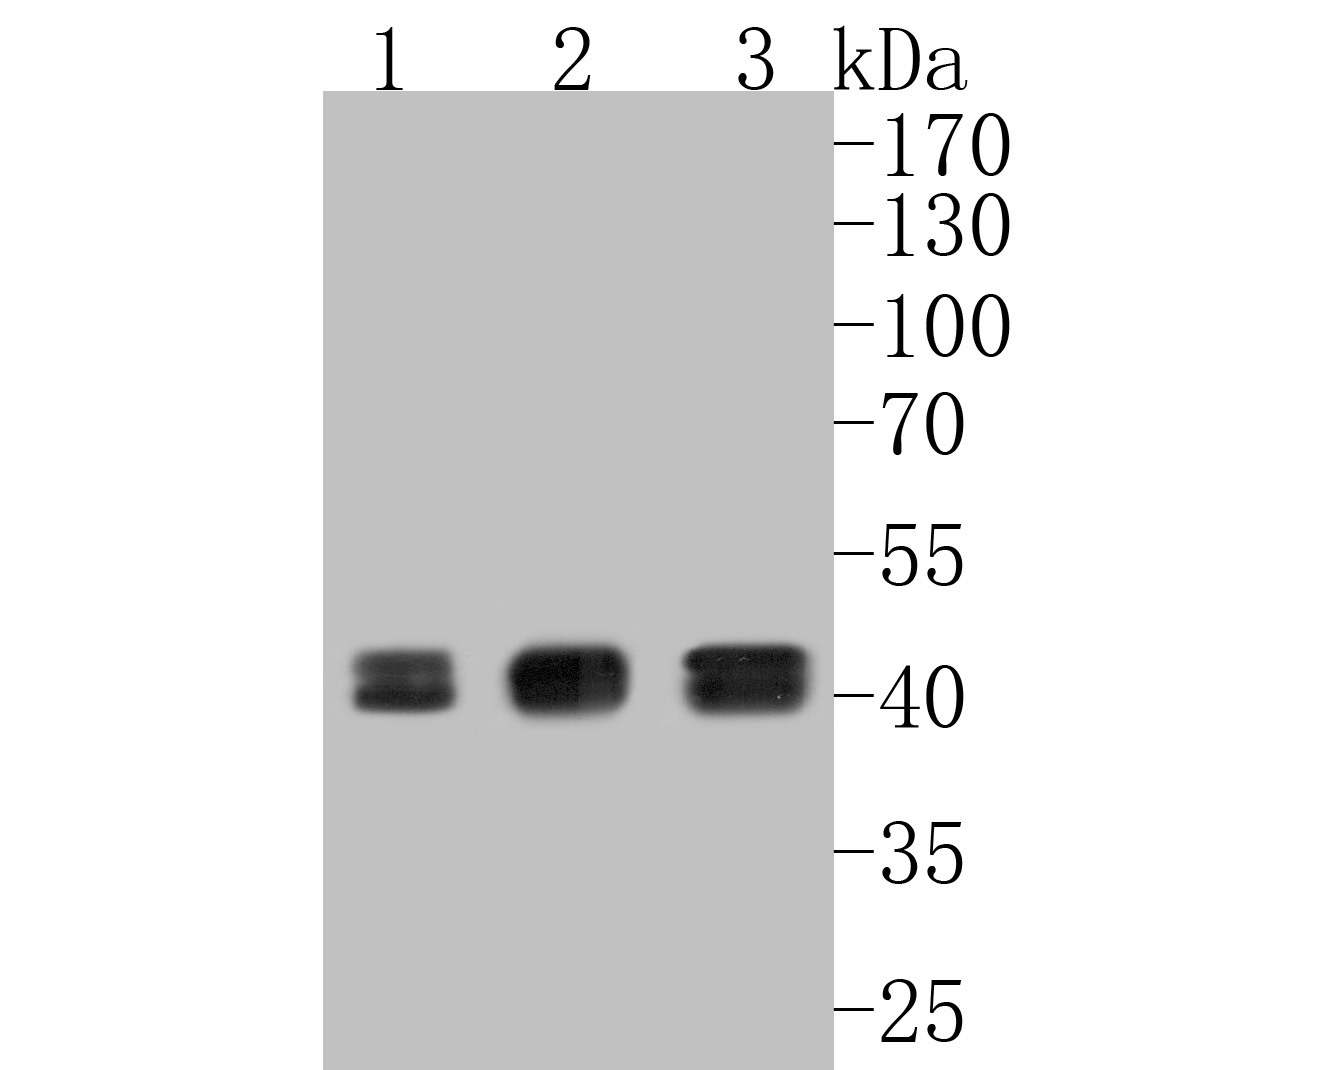 Western blot analysis of Erk1(pT202/pY204)+Erk2(pT185/pY187) on different lysates. Proteins were transferred to a PVDF membrane and blocked with 5% BSA in PBS for 1 hour at room temperature. The primary antibody (ET1610-13, 1/500) was used in 5% BSA at room temperature for 2 hours. Goat Anti-Rabbit IgG - HRP Secondary Antibody (HA1001) at 1:5,000 dilution was used for 1 hour at room temperature.<br /> Positive control: <br /> Lane 1: A431 cell lysate<br /> Lane 2: MCF-7 cell lysate<br /> Lane 3: SK-Br-3 cell lysate